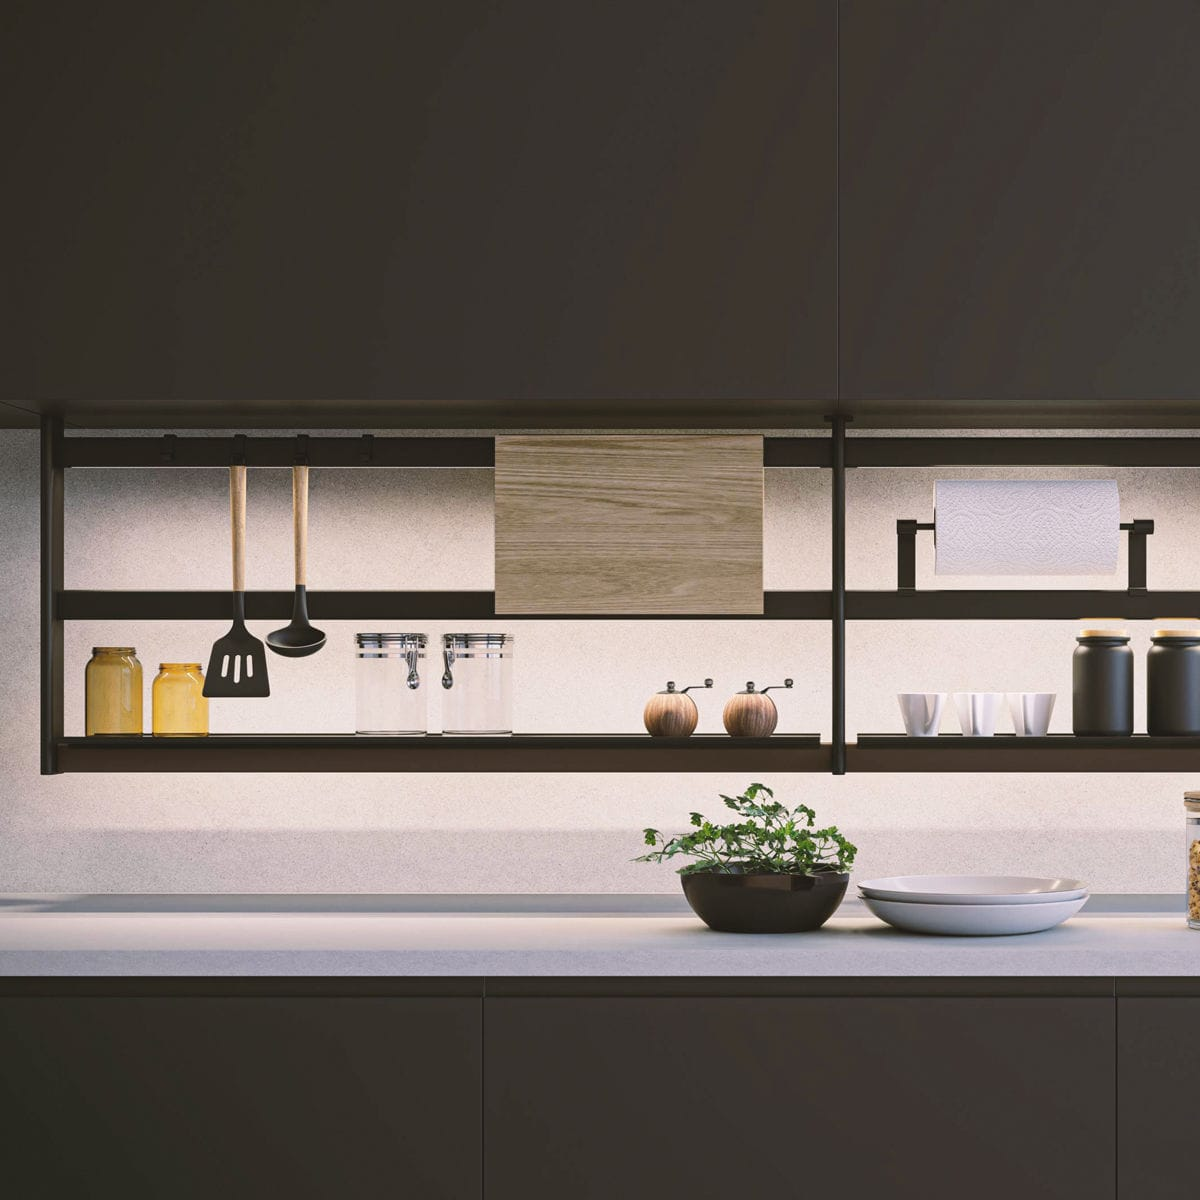 Wall Mounted Shelf Hang Lux Damiano Latini Srl Contemporary Metal For Kitchens